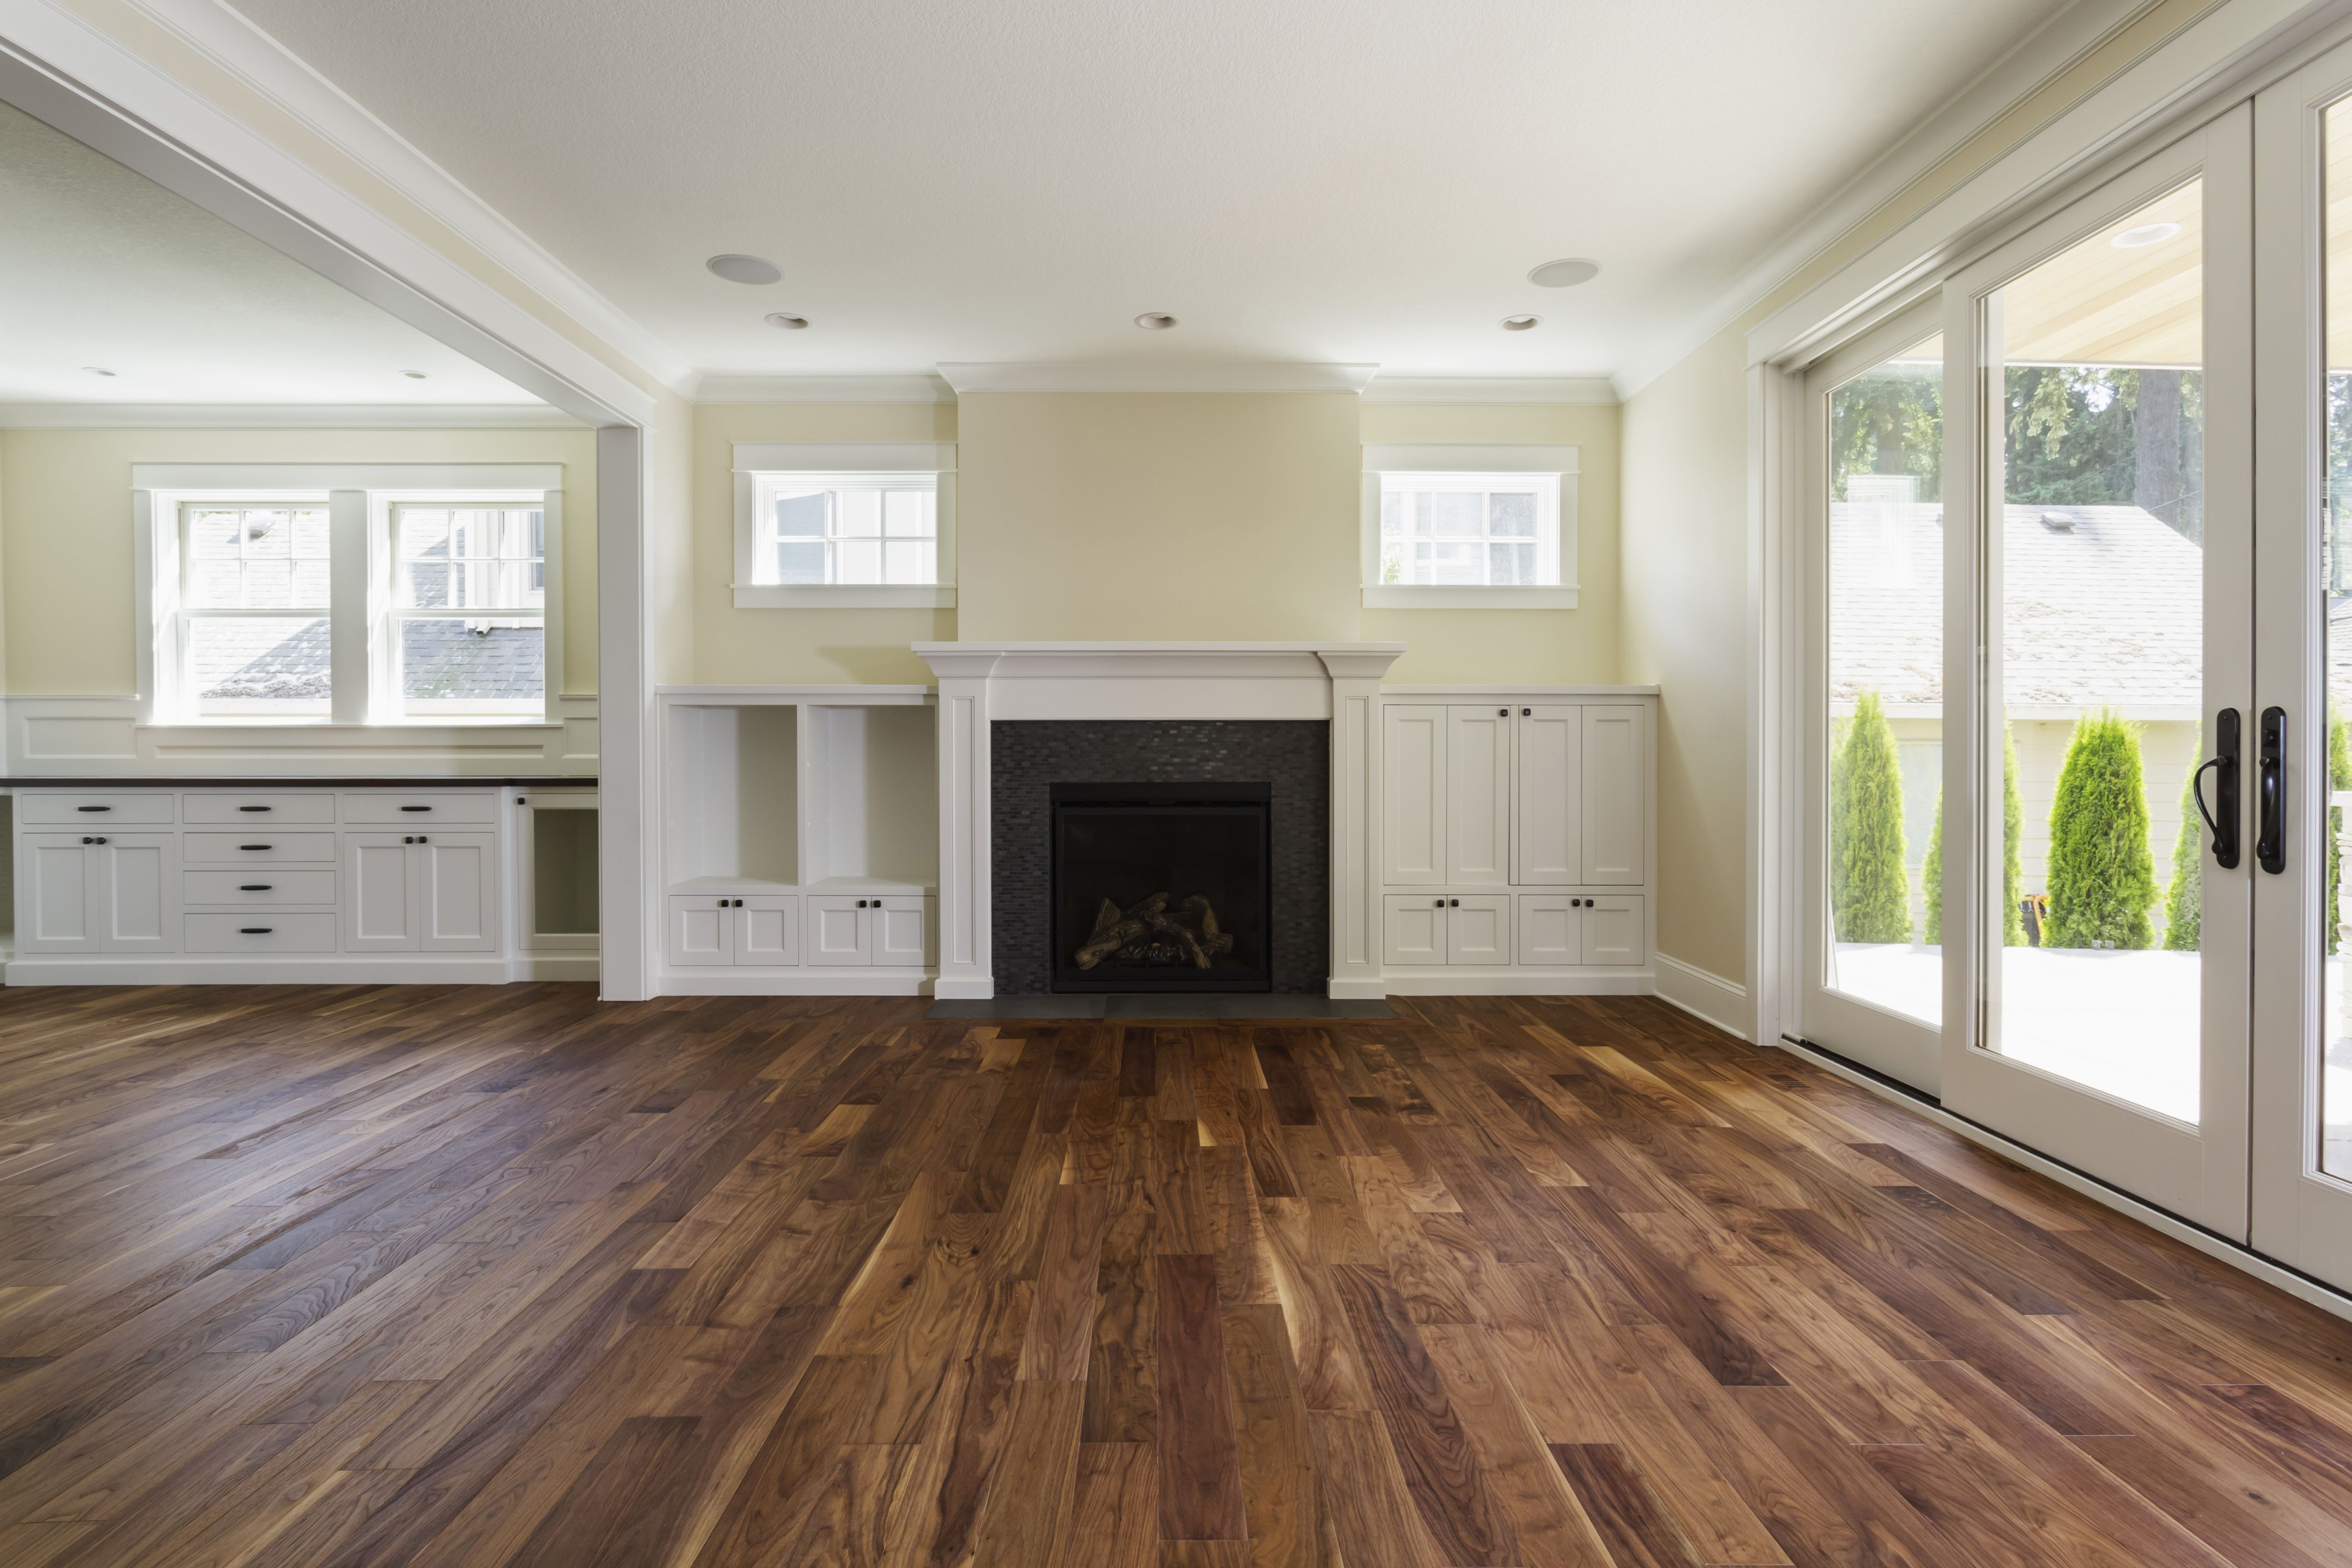 discount engineered hardwood flooring prices of the pros and cons of prefinished hardwood flooring pertaining to fireplace and built in shelves in living room 482143011 57bef8e33df78cc16e035397